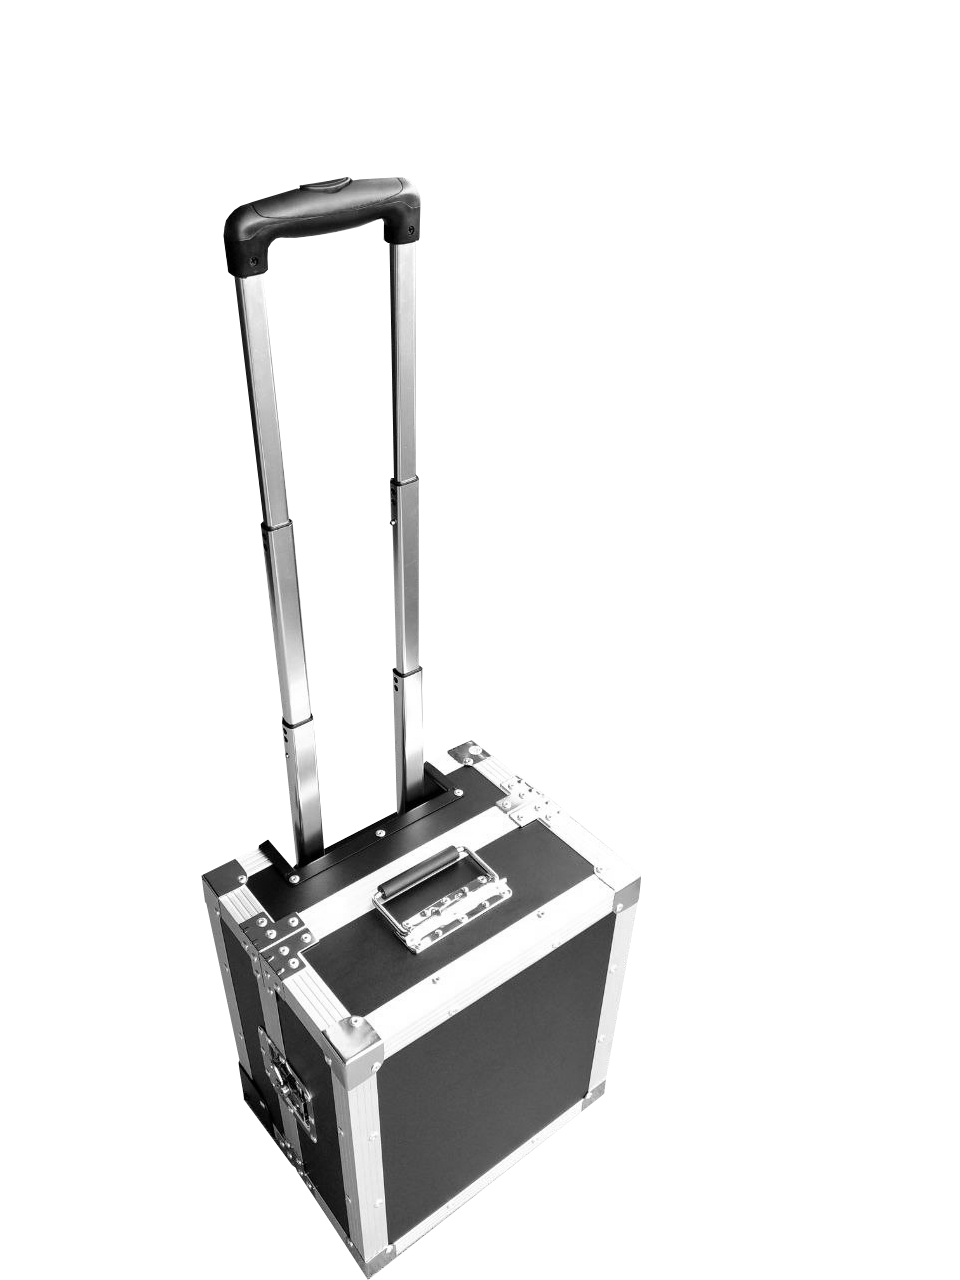 DNP620/DNP820 Printer Travel Road Case